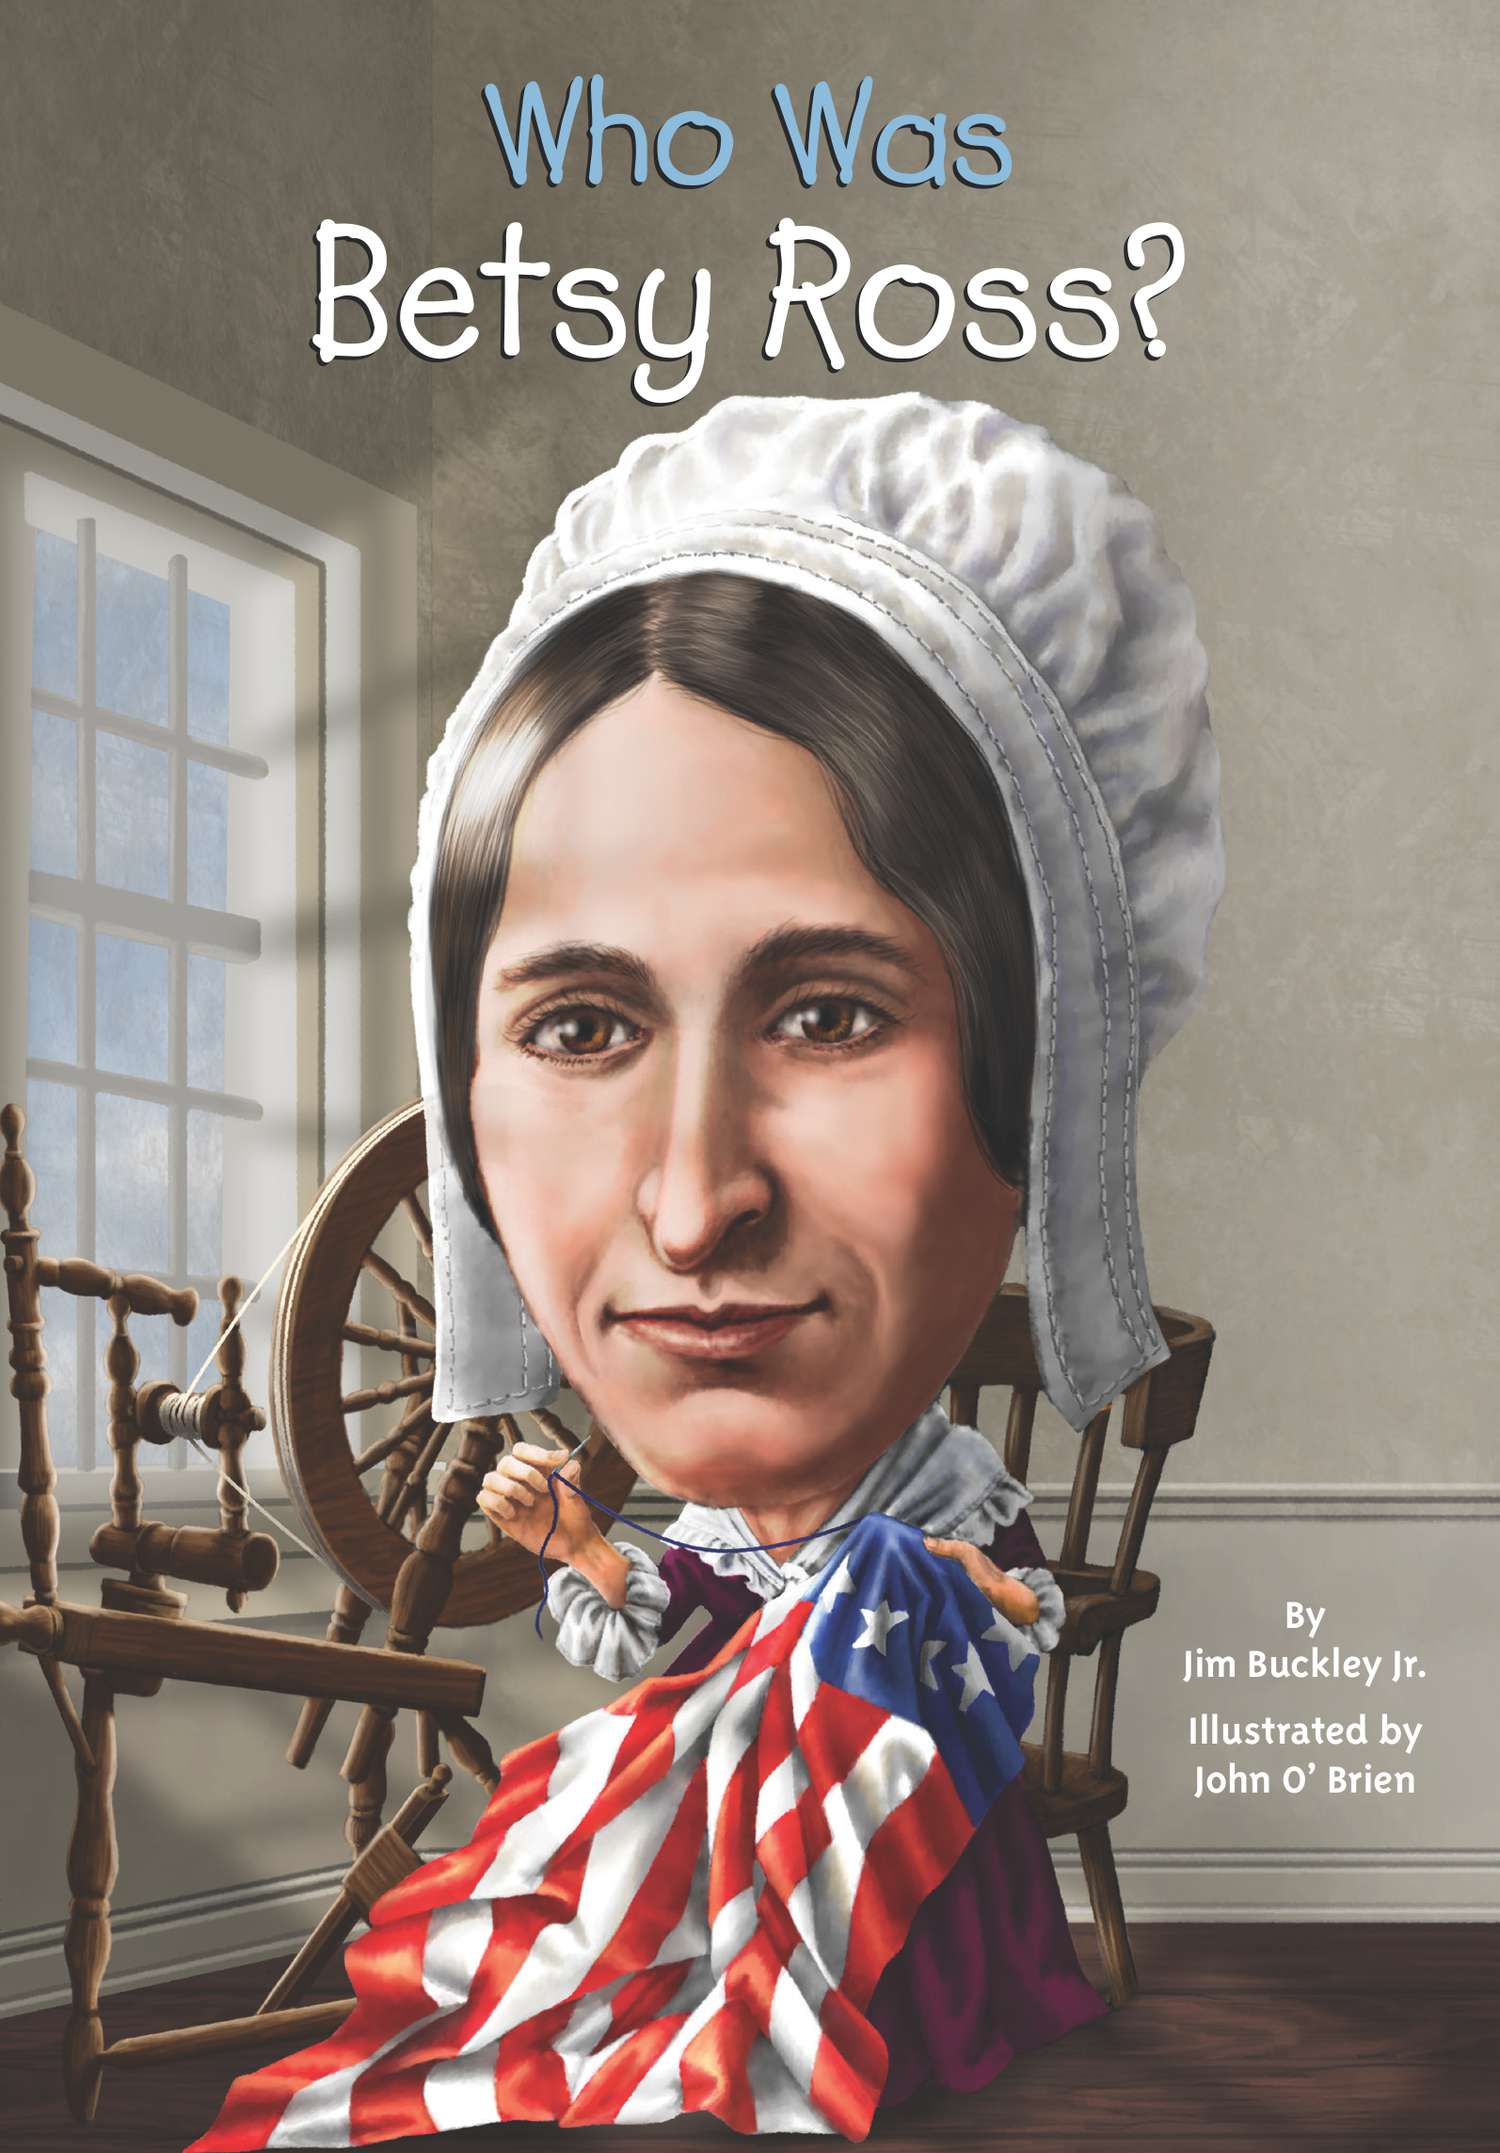 Betsy Ross Quotes That She Did Quotesgram